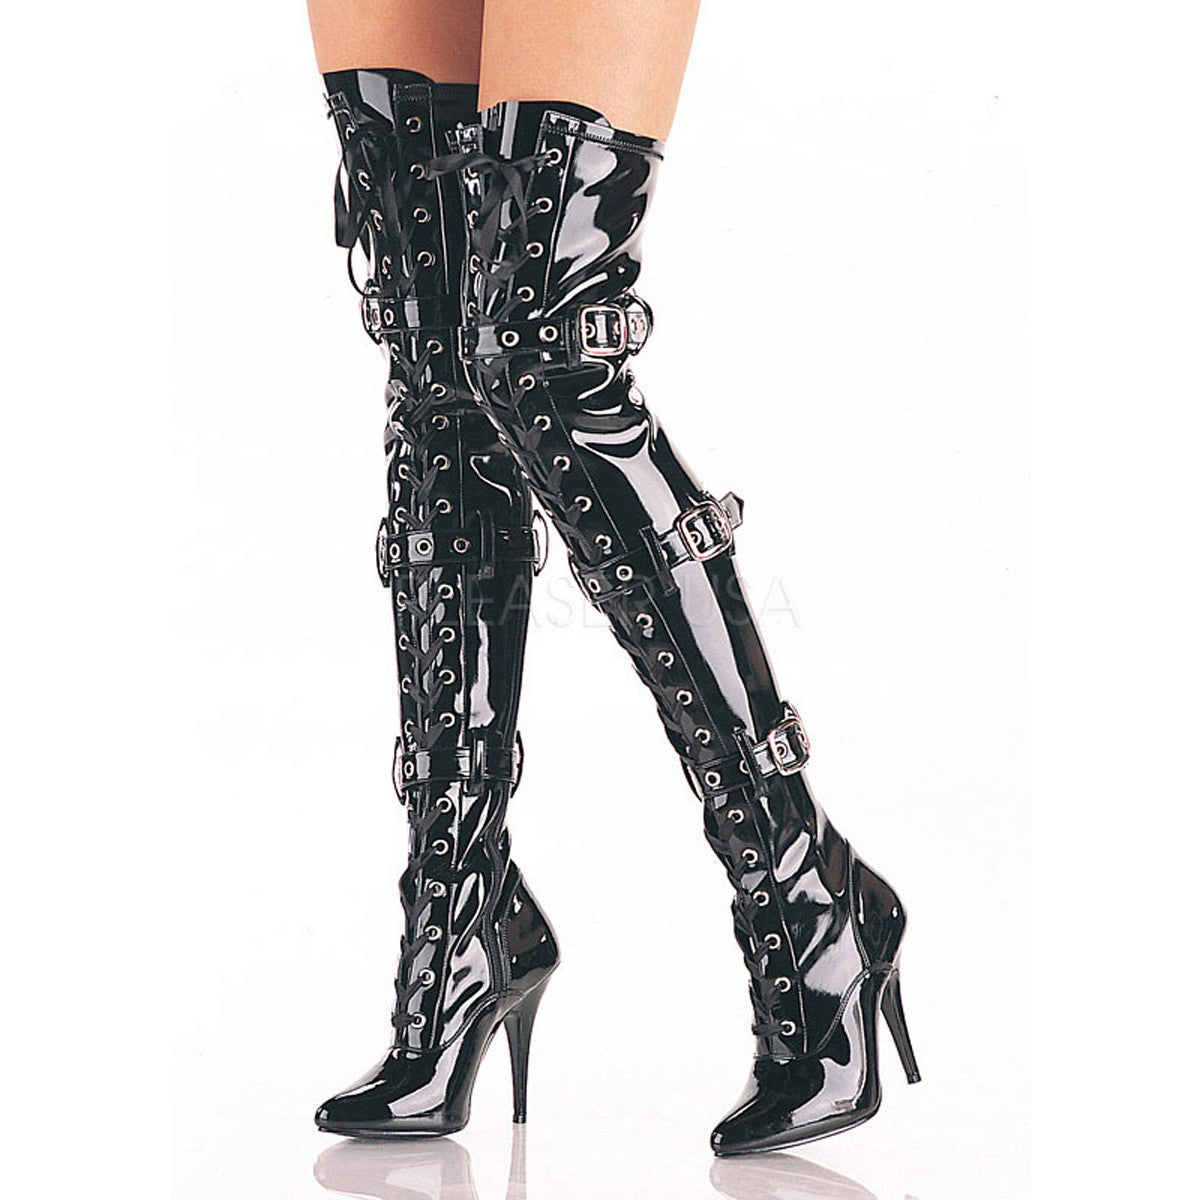 Thigh High Buckle Boots